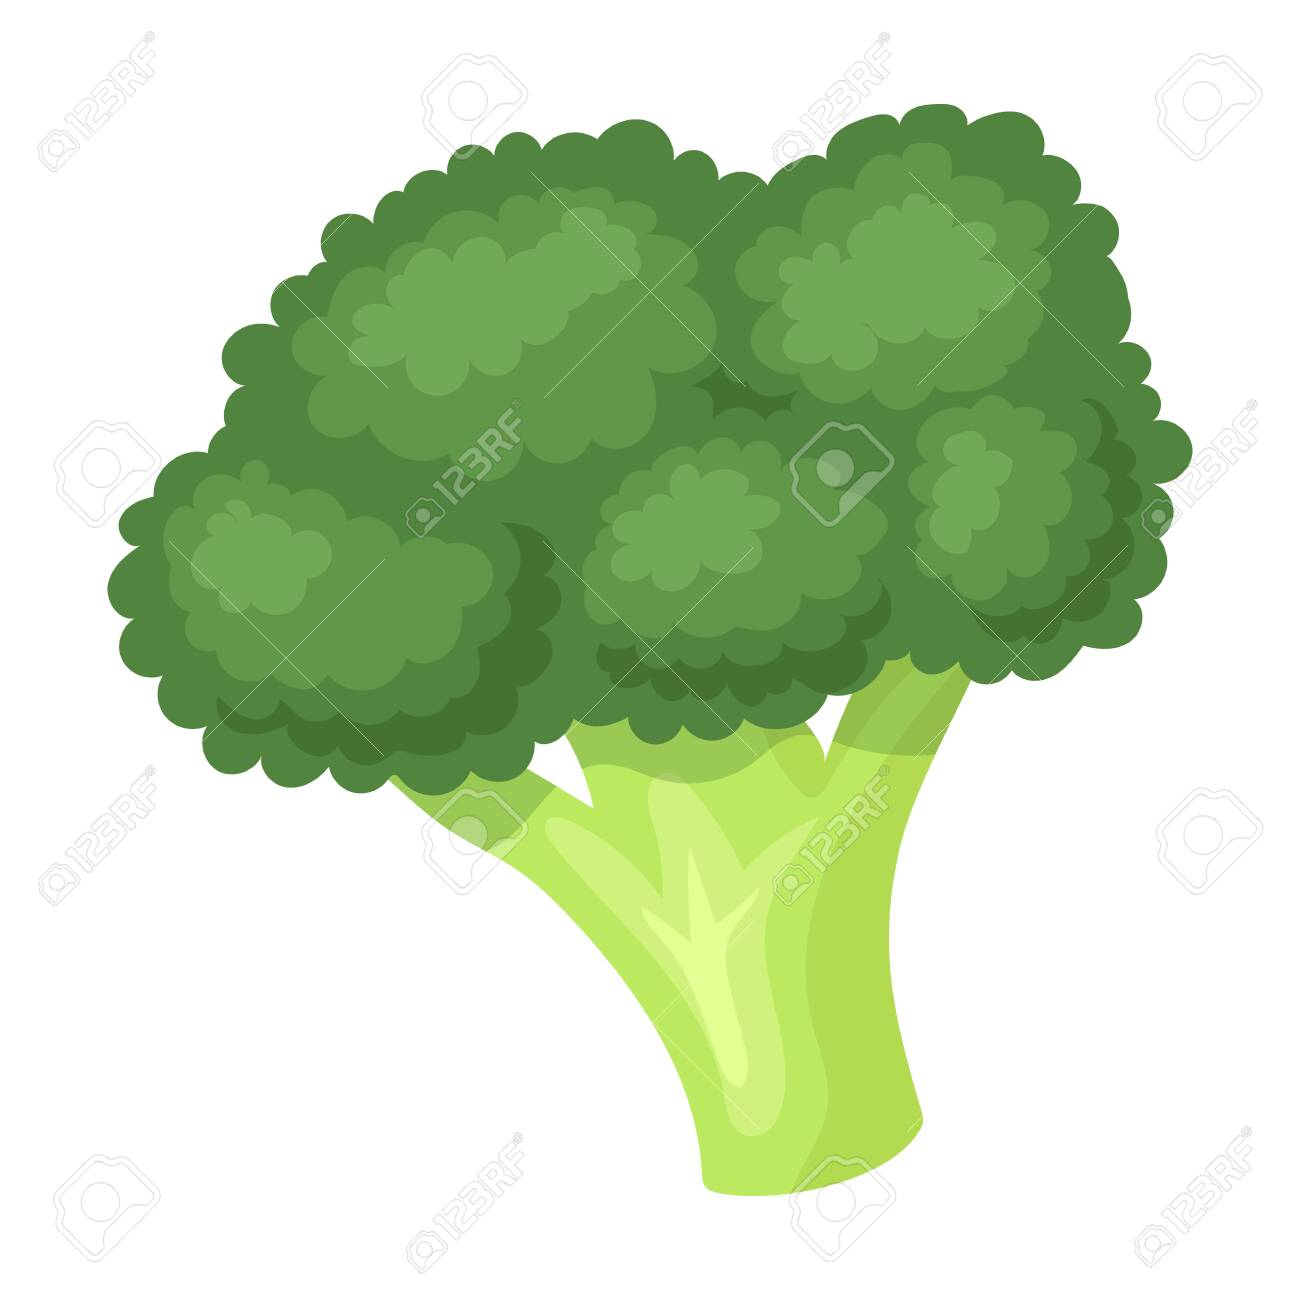 broccoli vector icon cartoon vector icon isolated on white background royalty free cliparts vectors and stock illustration image 147158564 123rf com